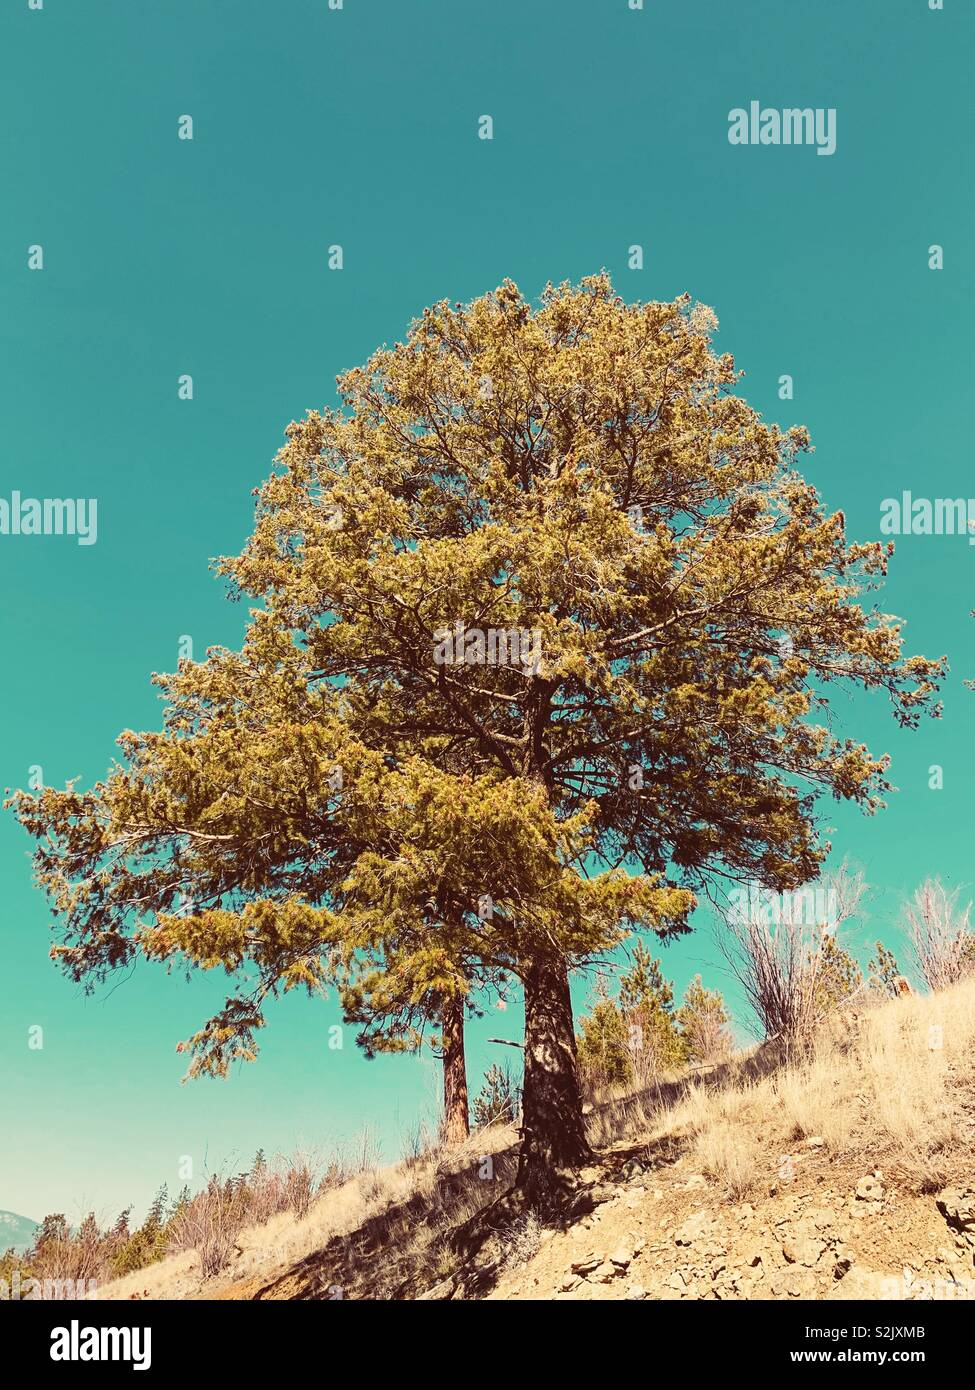 Tree on a hill with blue sky. - Stock Image